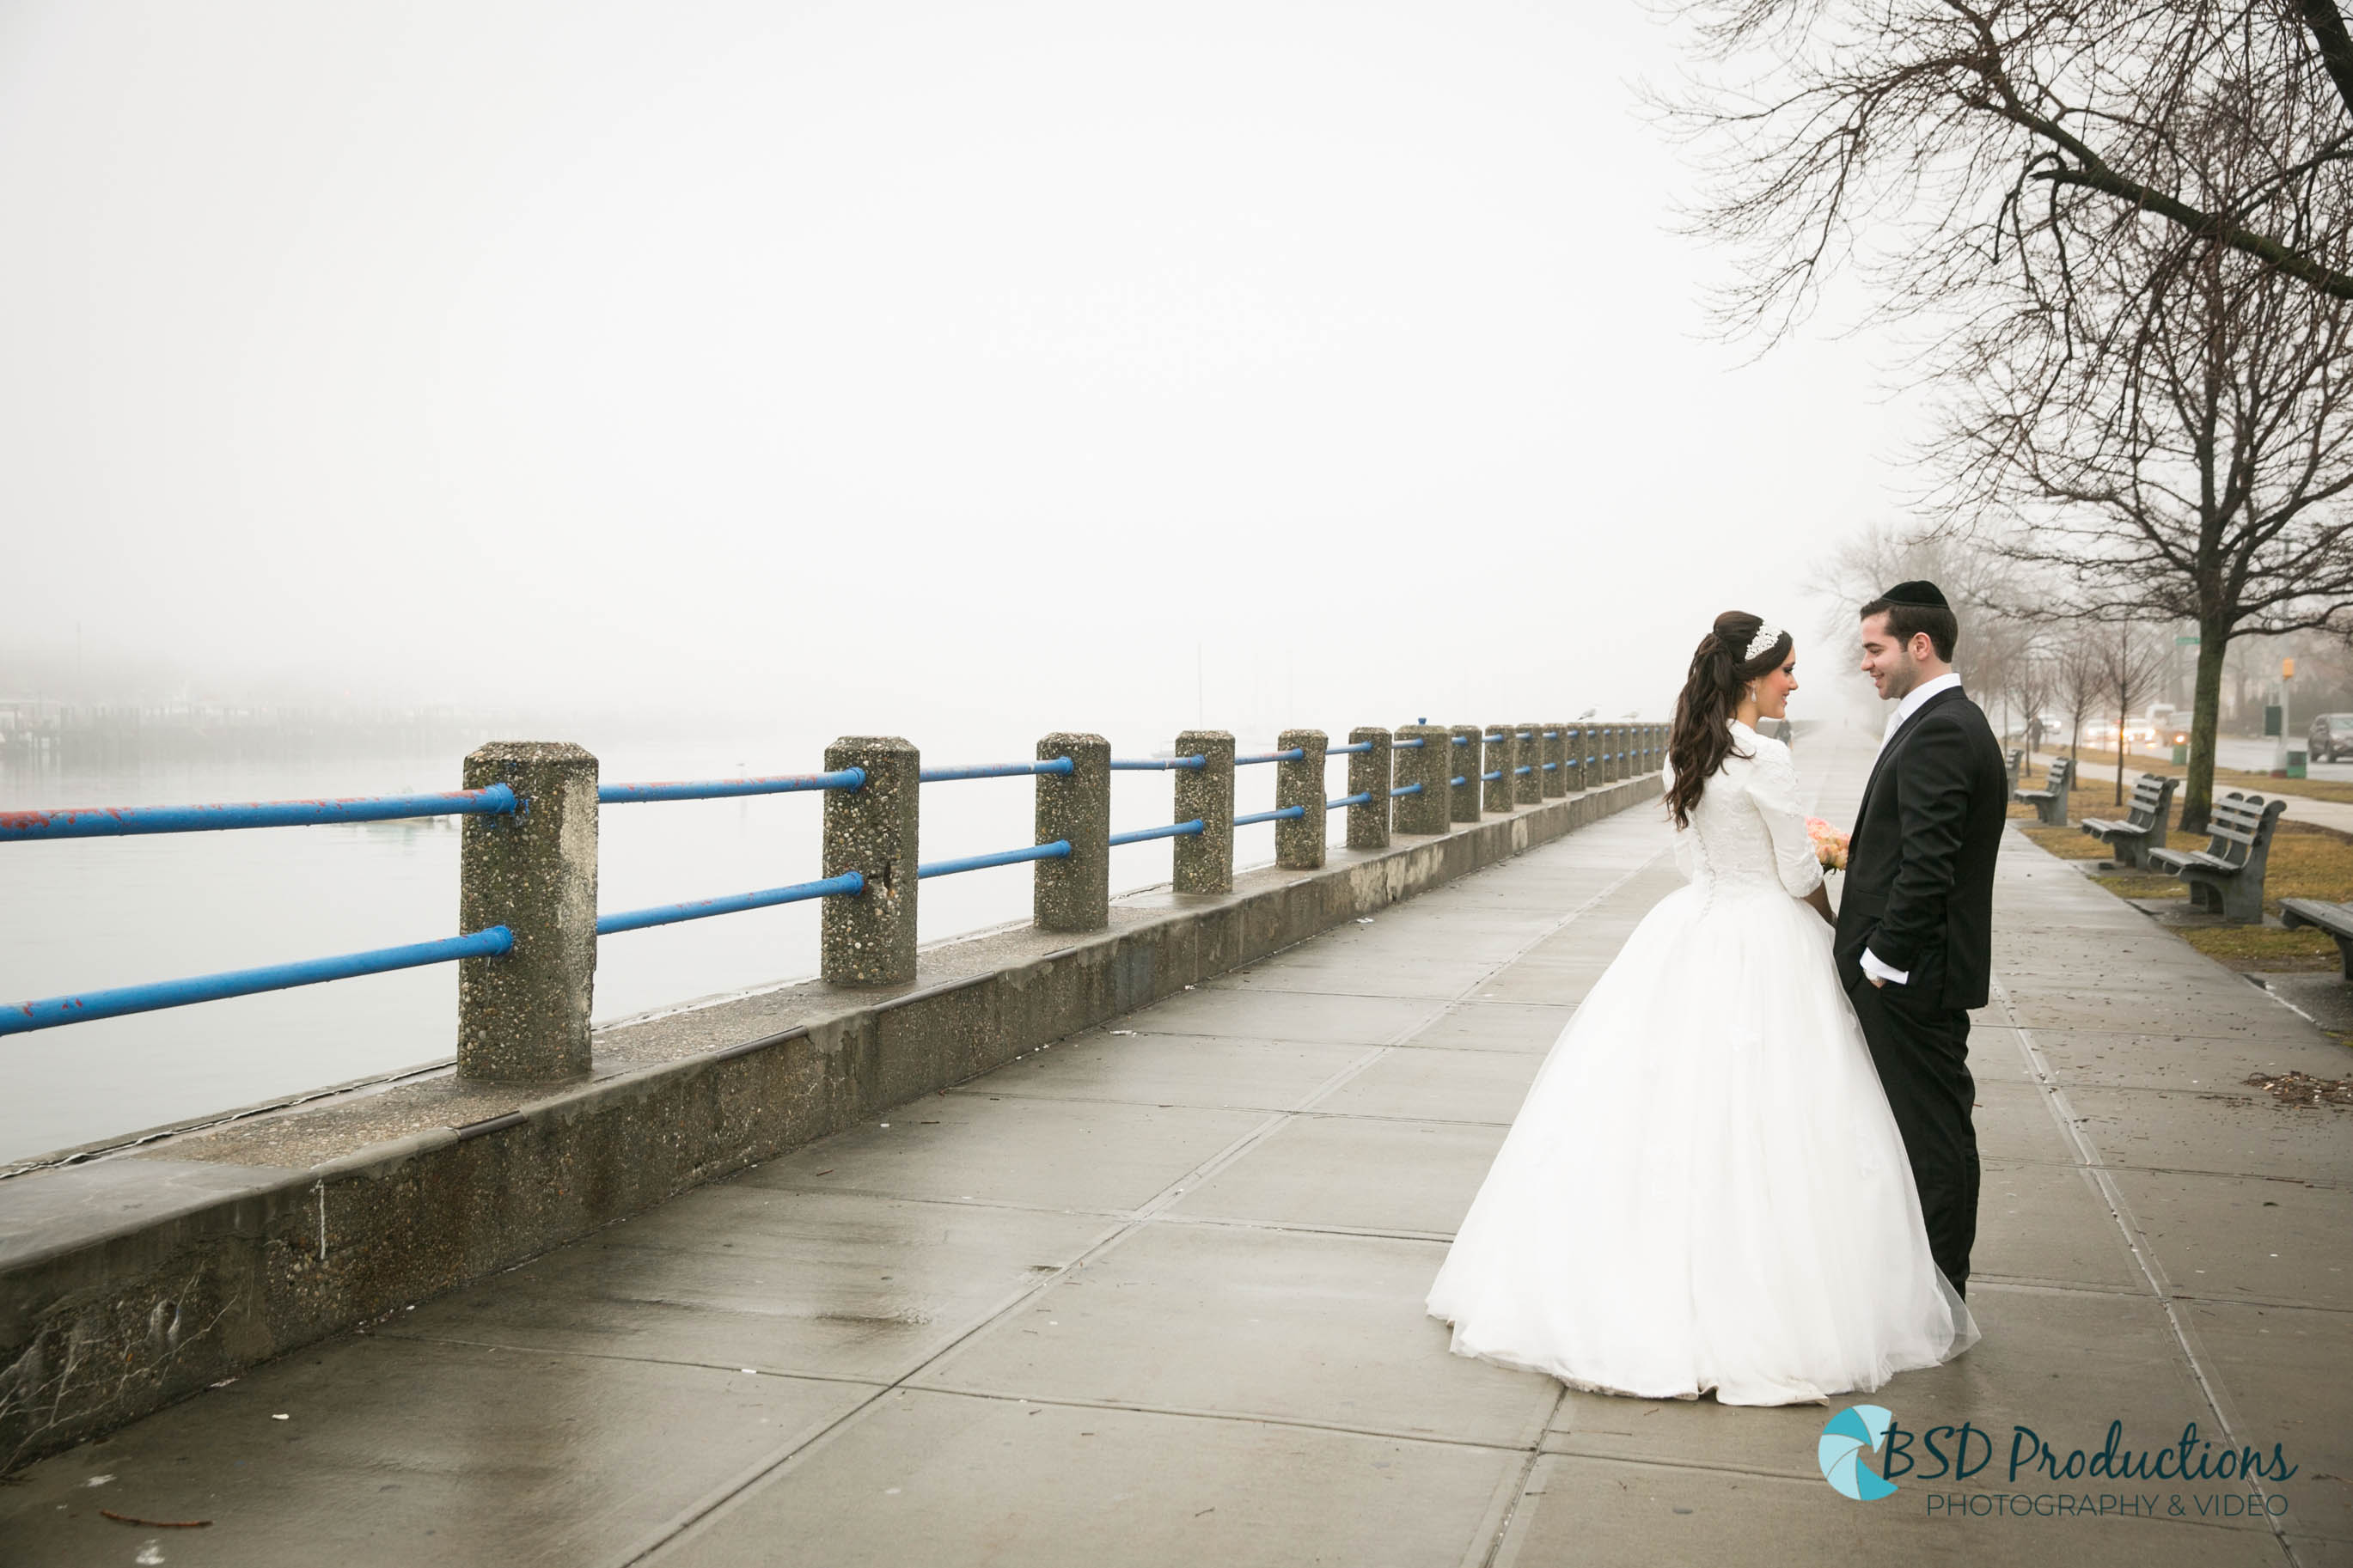 UH5A0522 Wedding – BSD Productions Photography